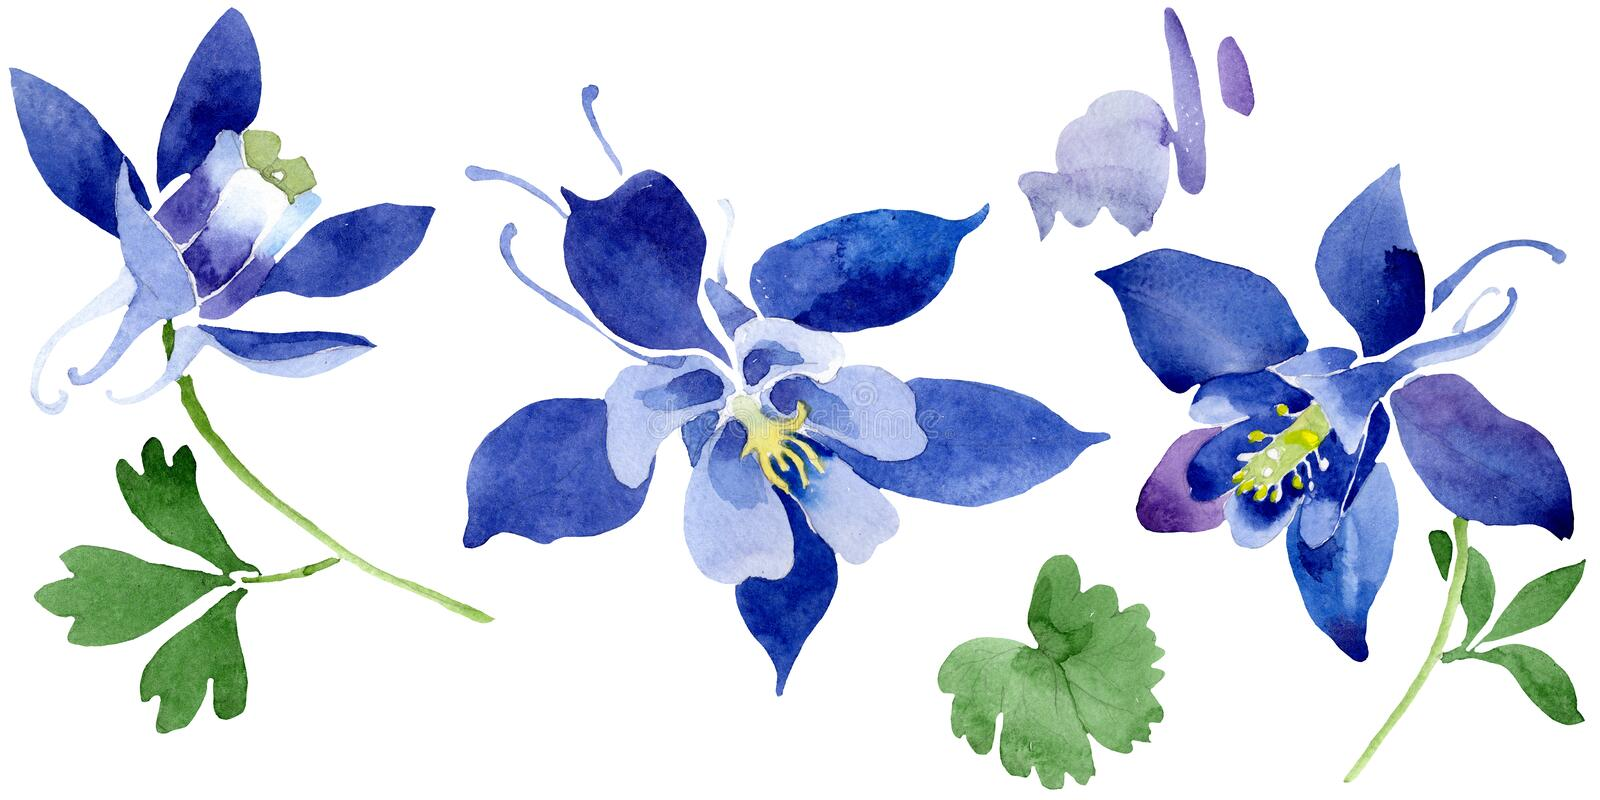 Blue aquilegia floral botanical flowers. Watercolor background set. Isolated aquileqia illustration element. vector illustration